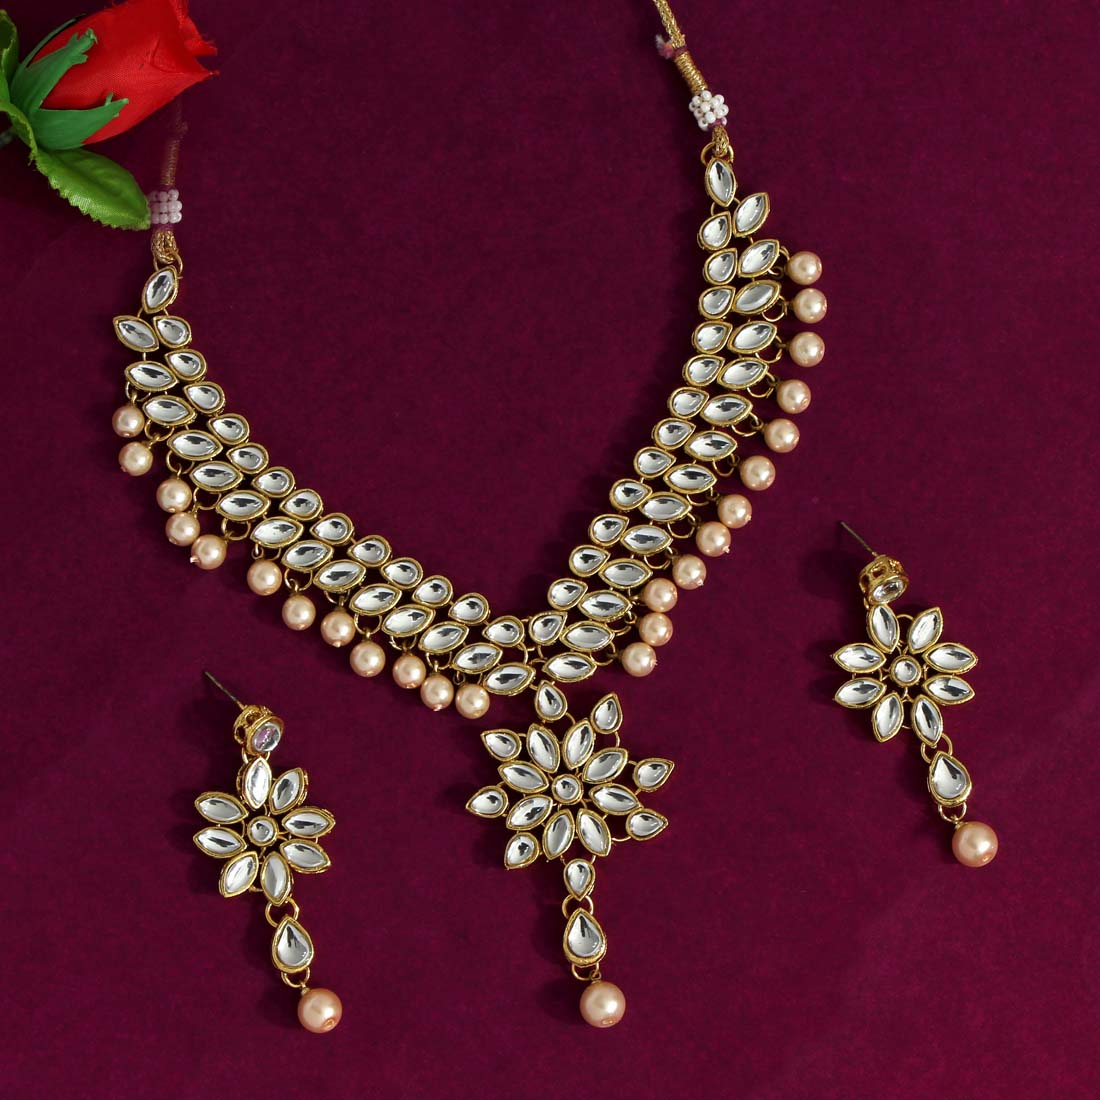 Kundan necklace set with white pearl